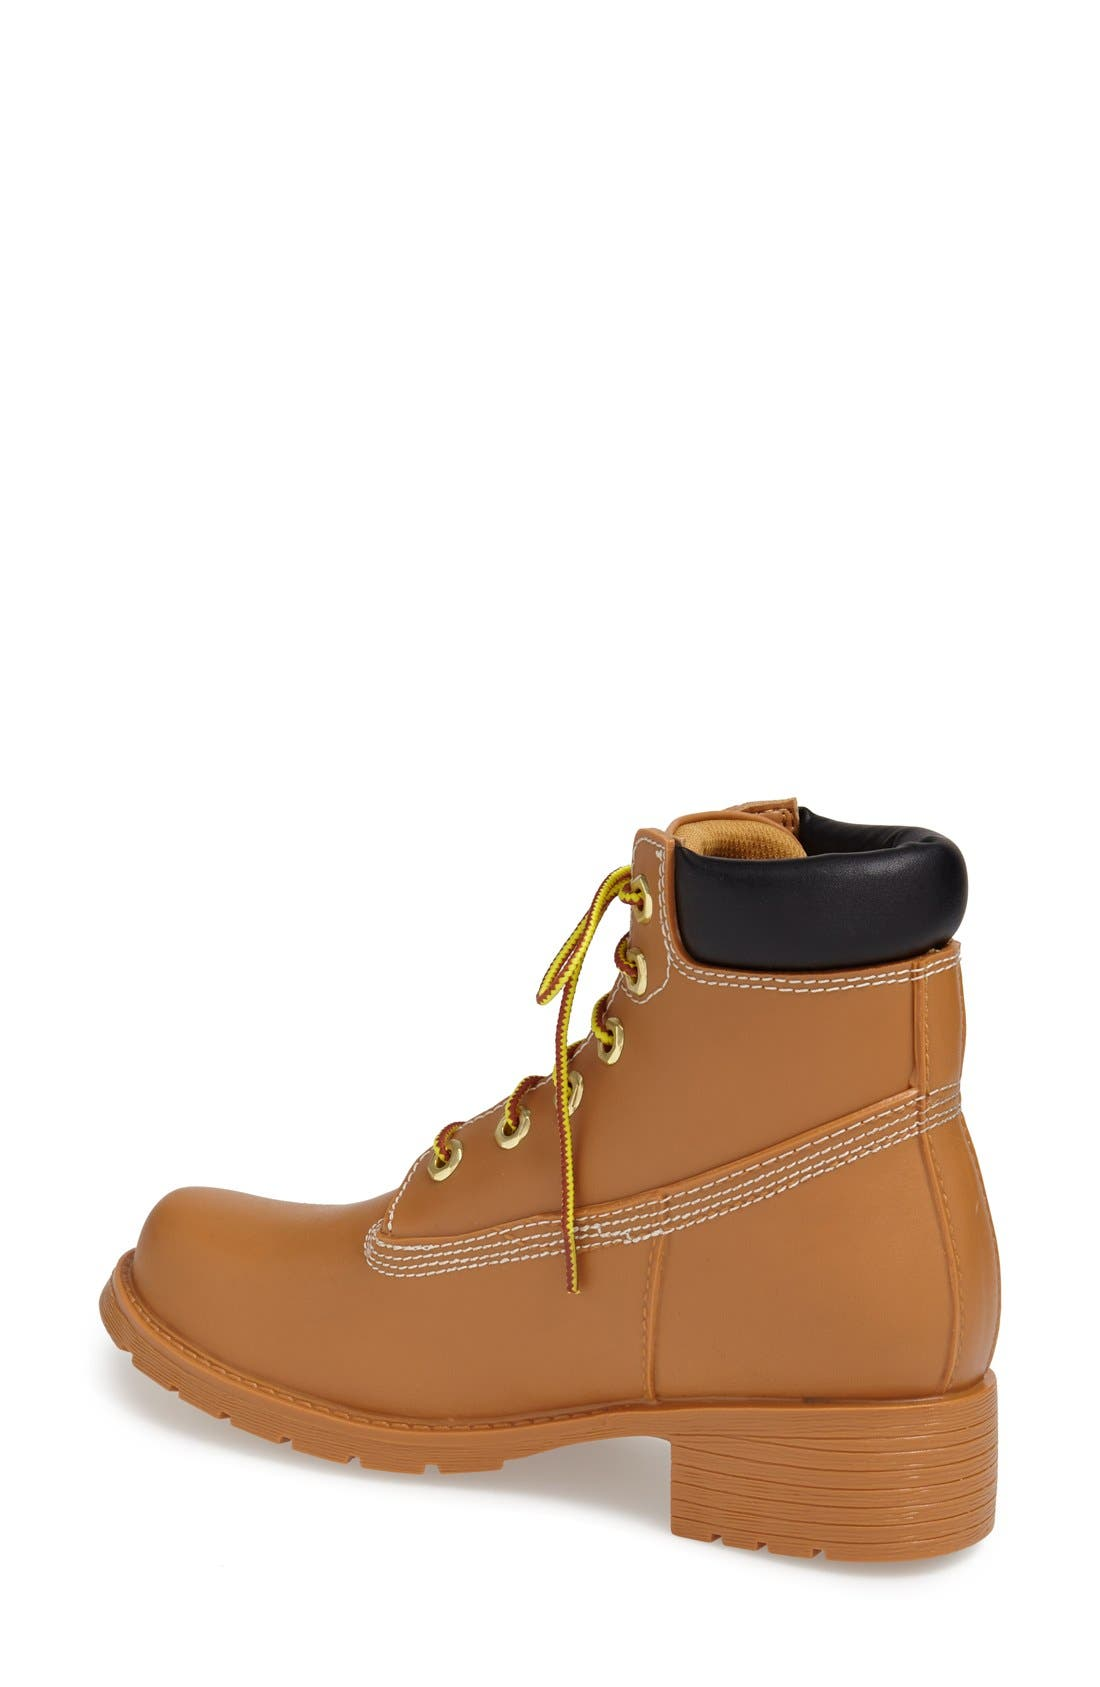 Alternate Image 2  - Jeffrey Campbell 'Deluge' Water Resistant Military Boot (Women)